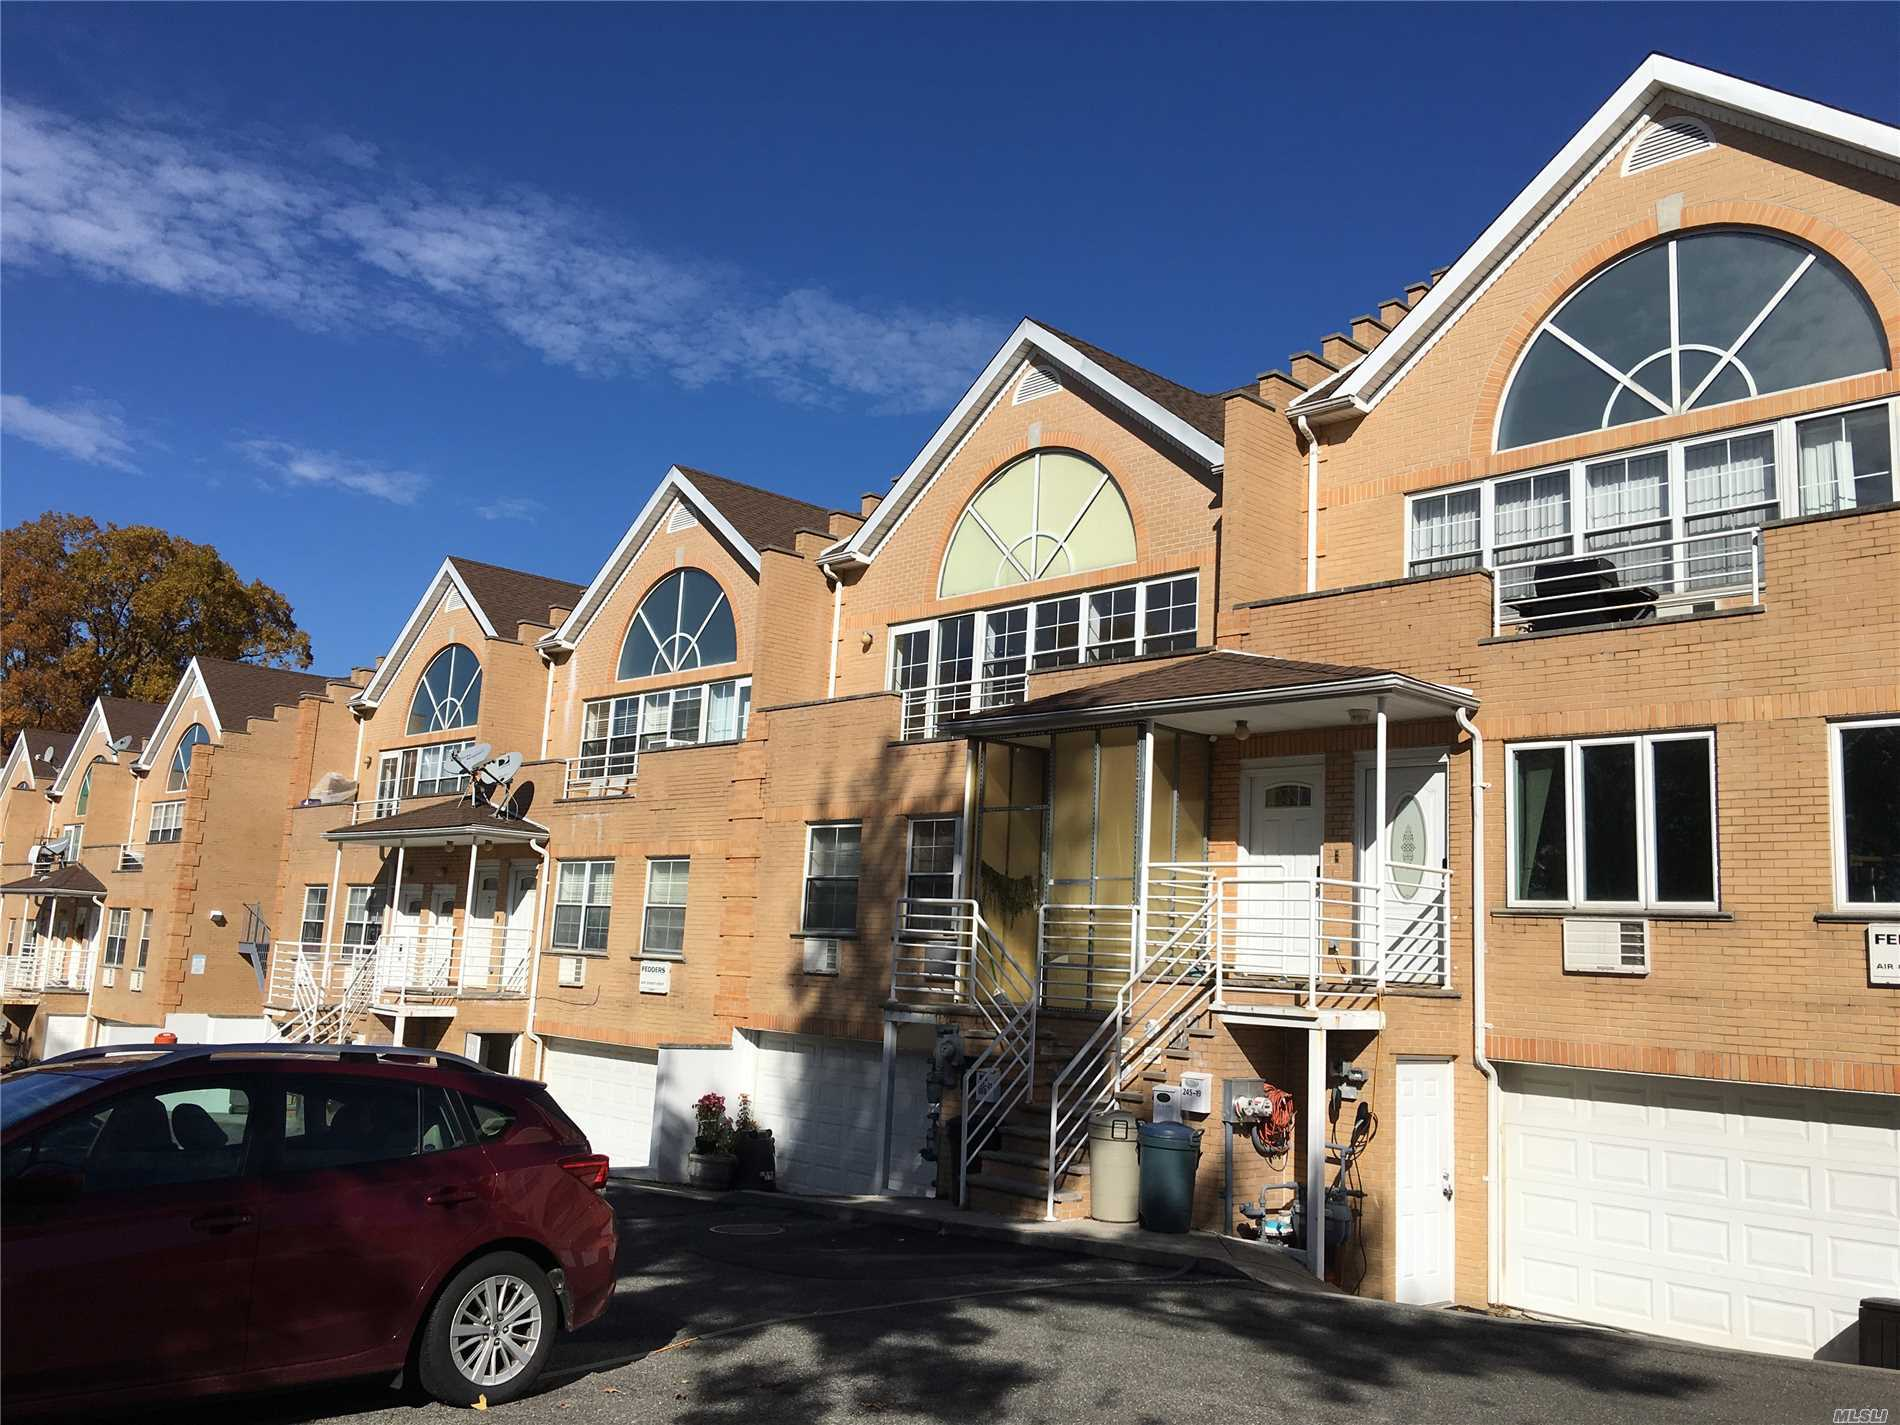 Beautiful Young 3Brs 2Bath Duplex Apt In Excellent Condition! Sunny And Bright. High Ceiling! School District #26. J.H.S 67. Close To Bus, Highway, Schools, Shopping Center, Movie Theater, Etc. Prime Location!